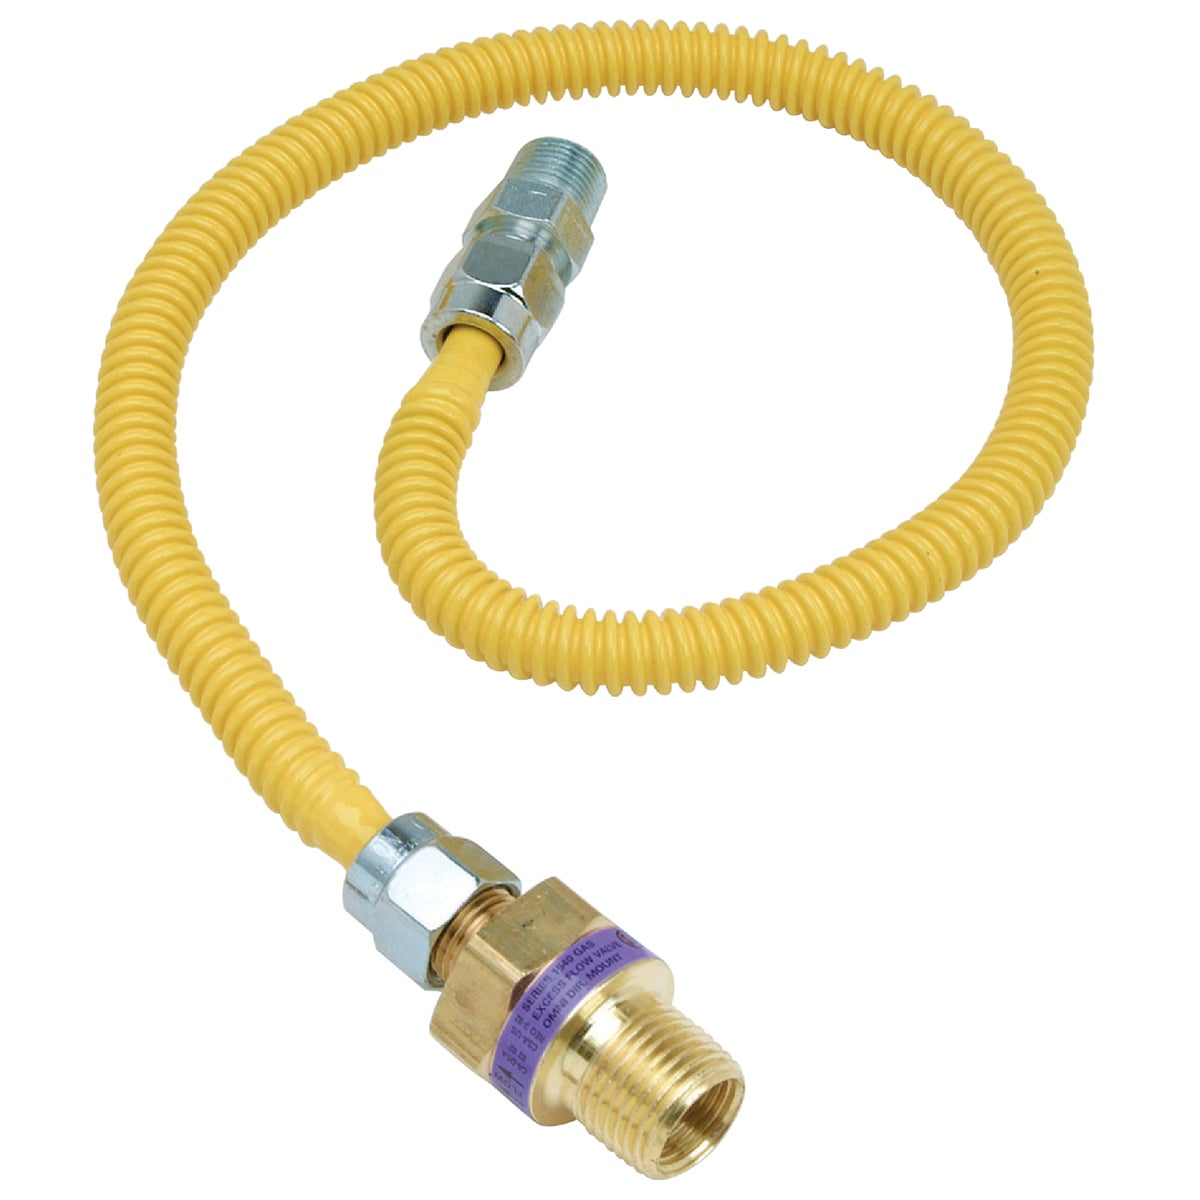 1/2X3/8-24 GAS CONNECTOR - CSSL47E-24P by Brass Craft